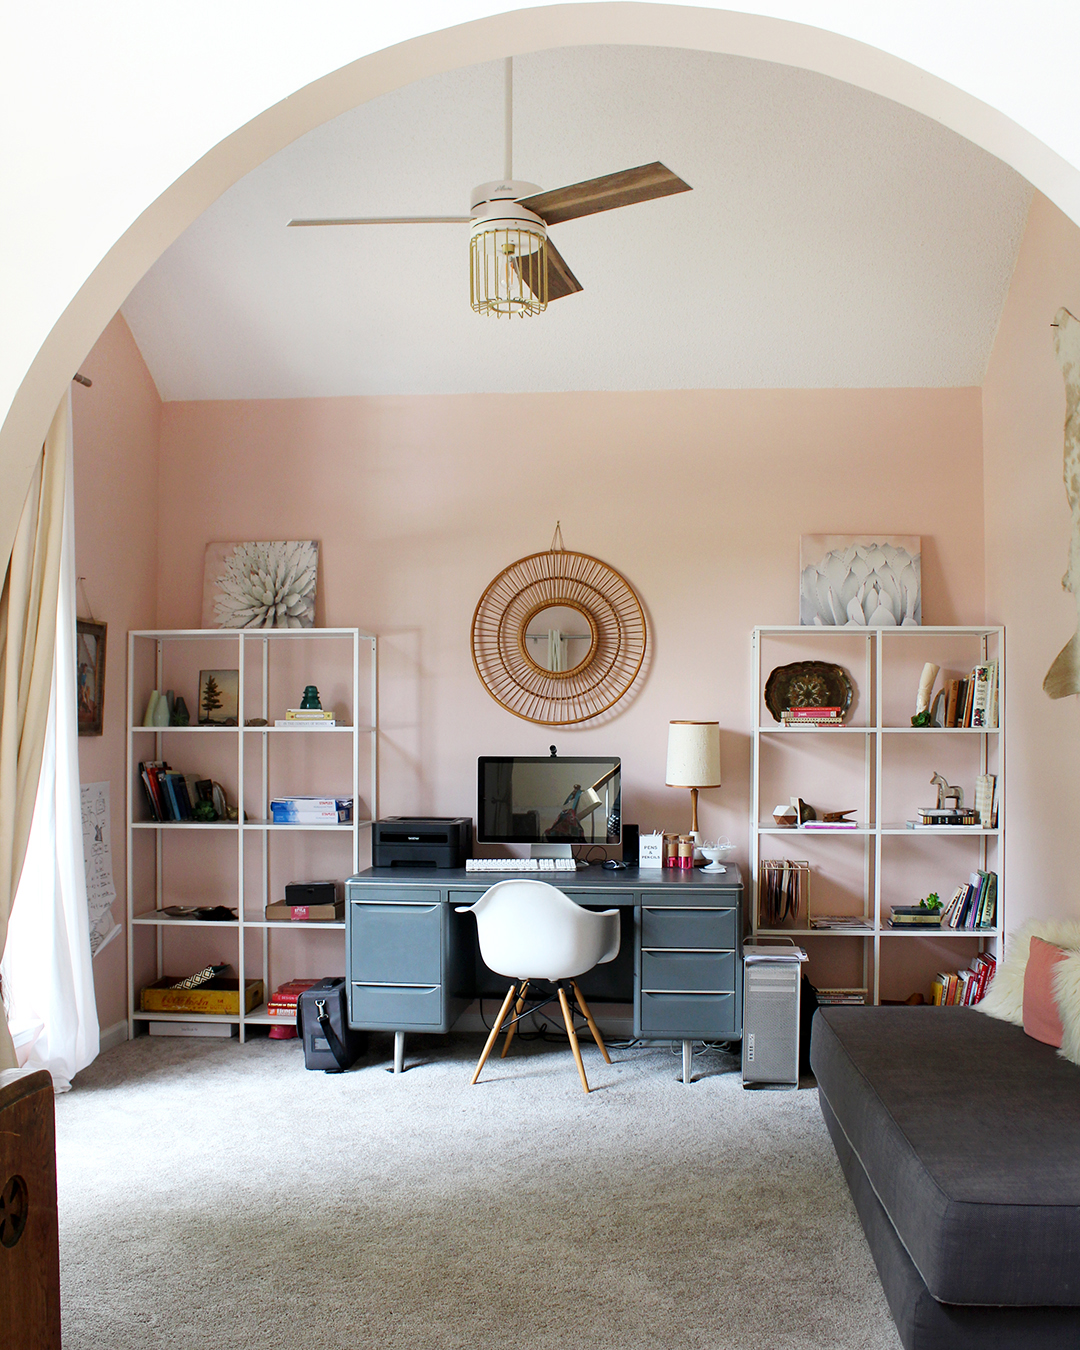 5 of the best pink paint colors from Sherwin Williams (office painted SW Romance)